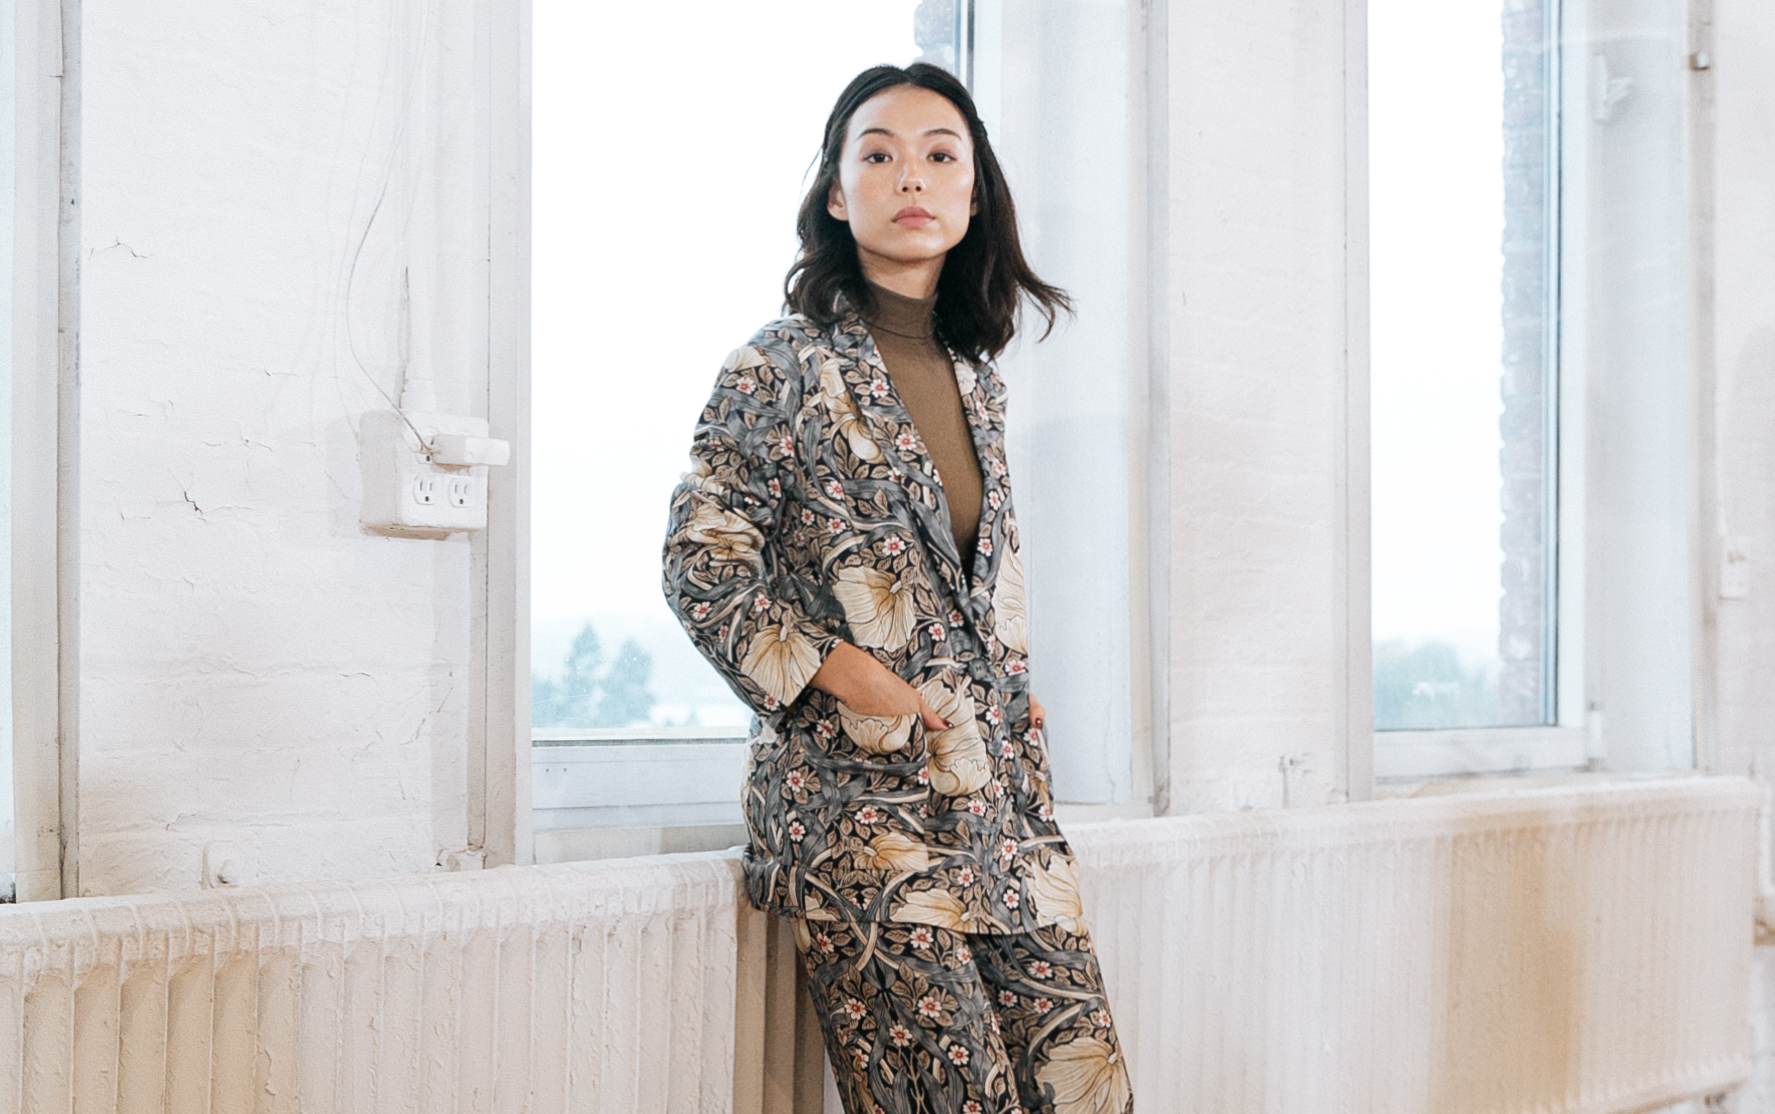 Our Top Picks from the Upcoming H&M x Morris & Co. Collection!